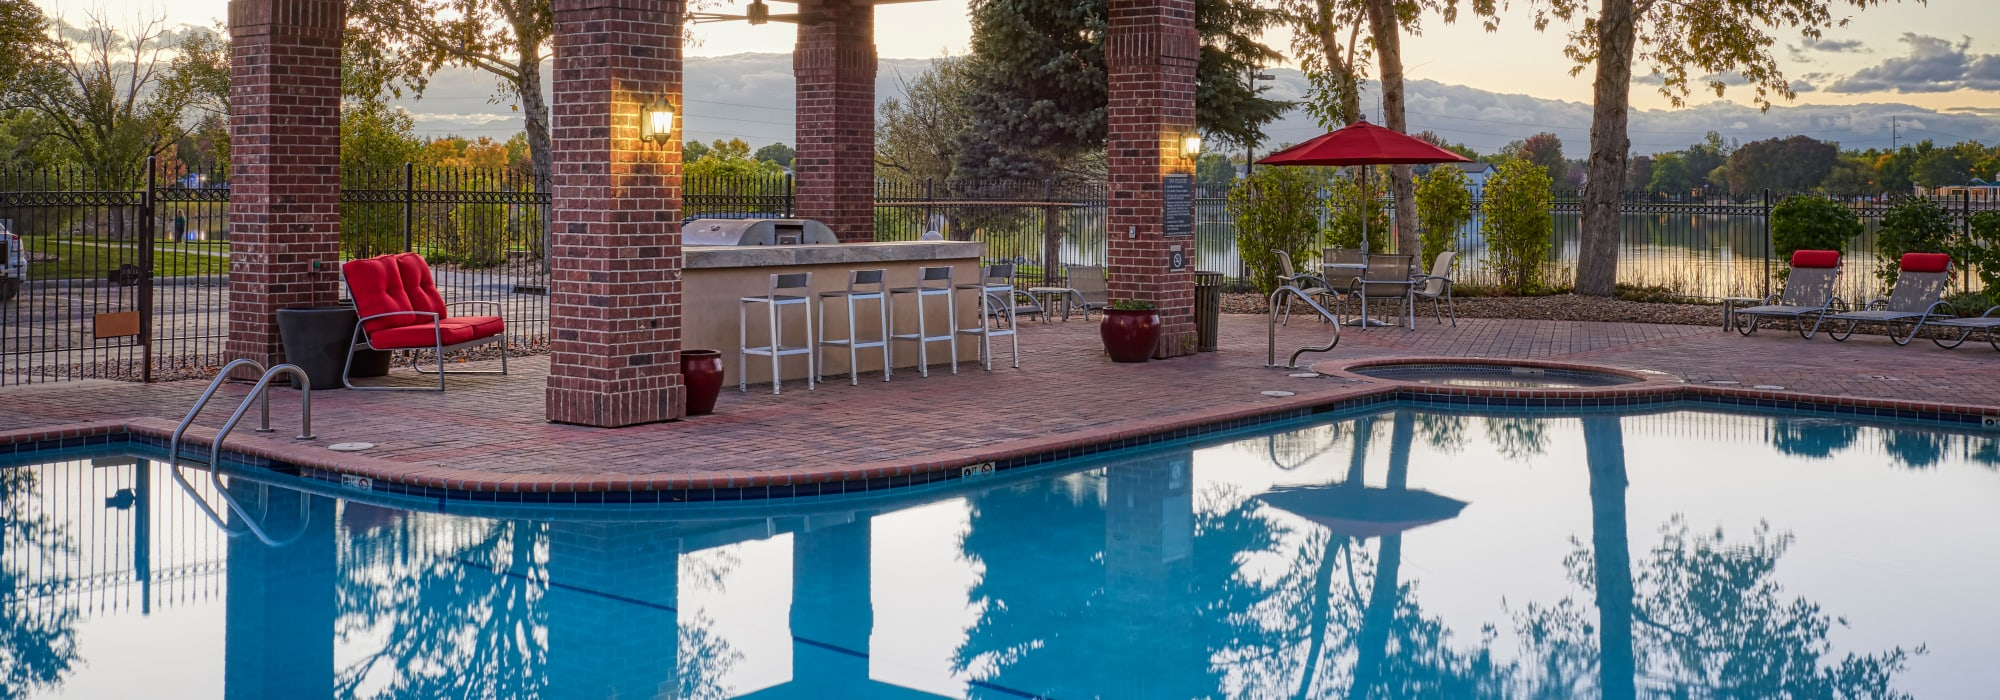 Contact us at Promenade at Hunter's Glen Apartments in Thornton, Colorado